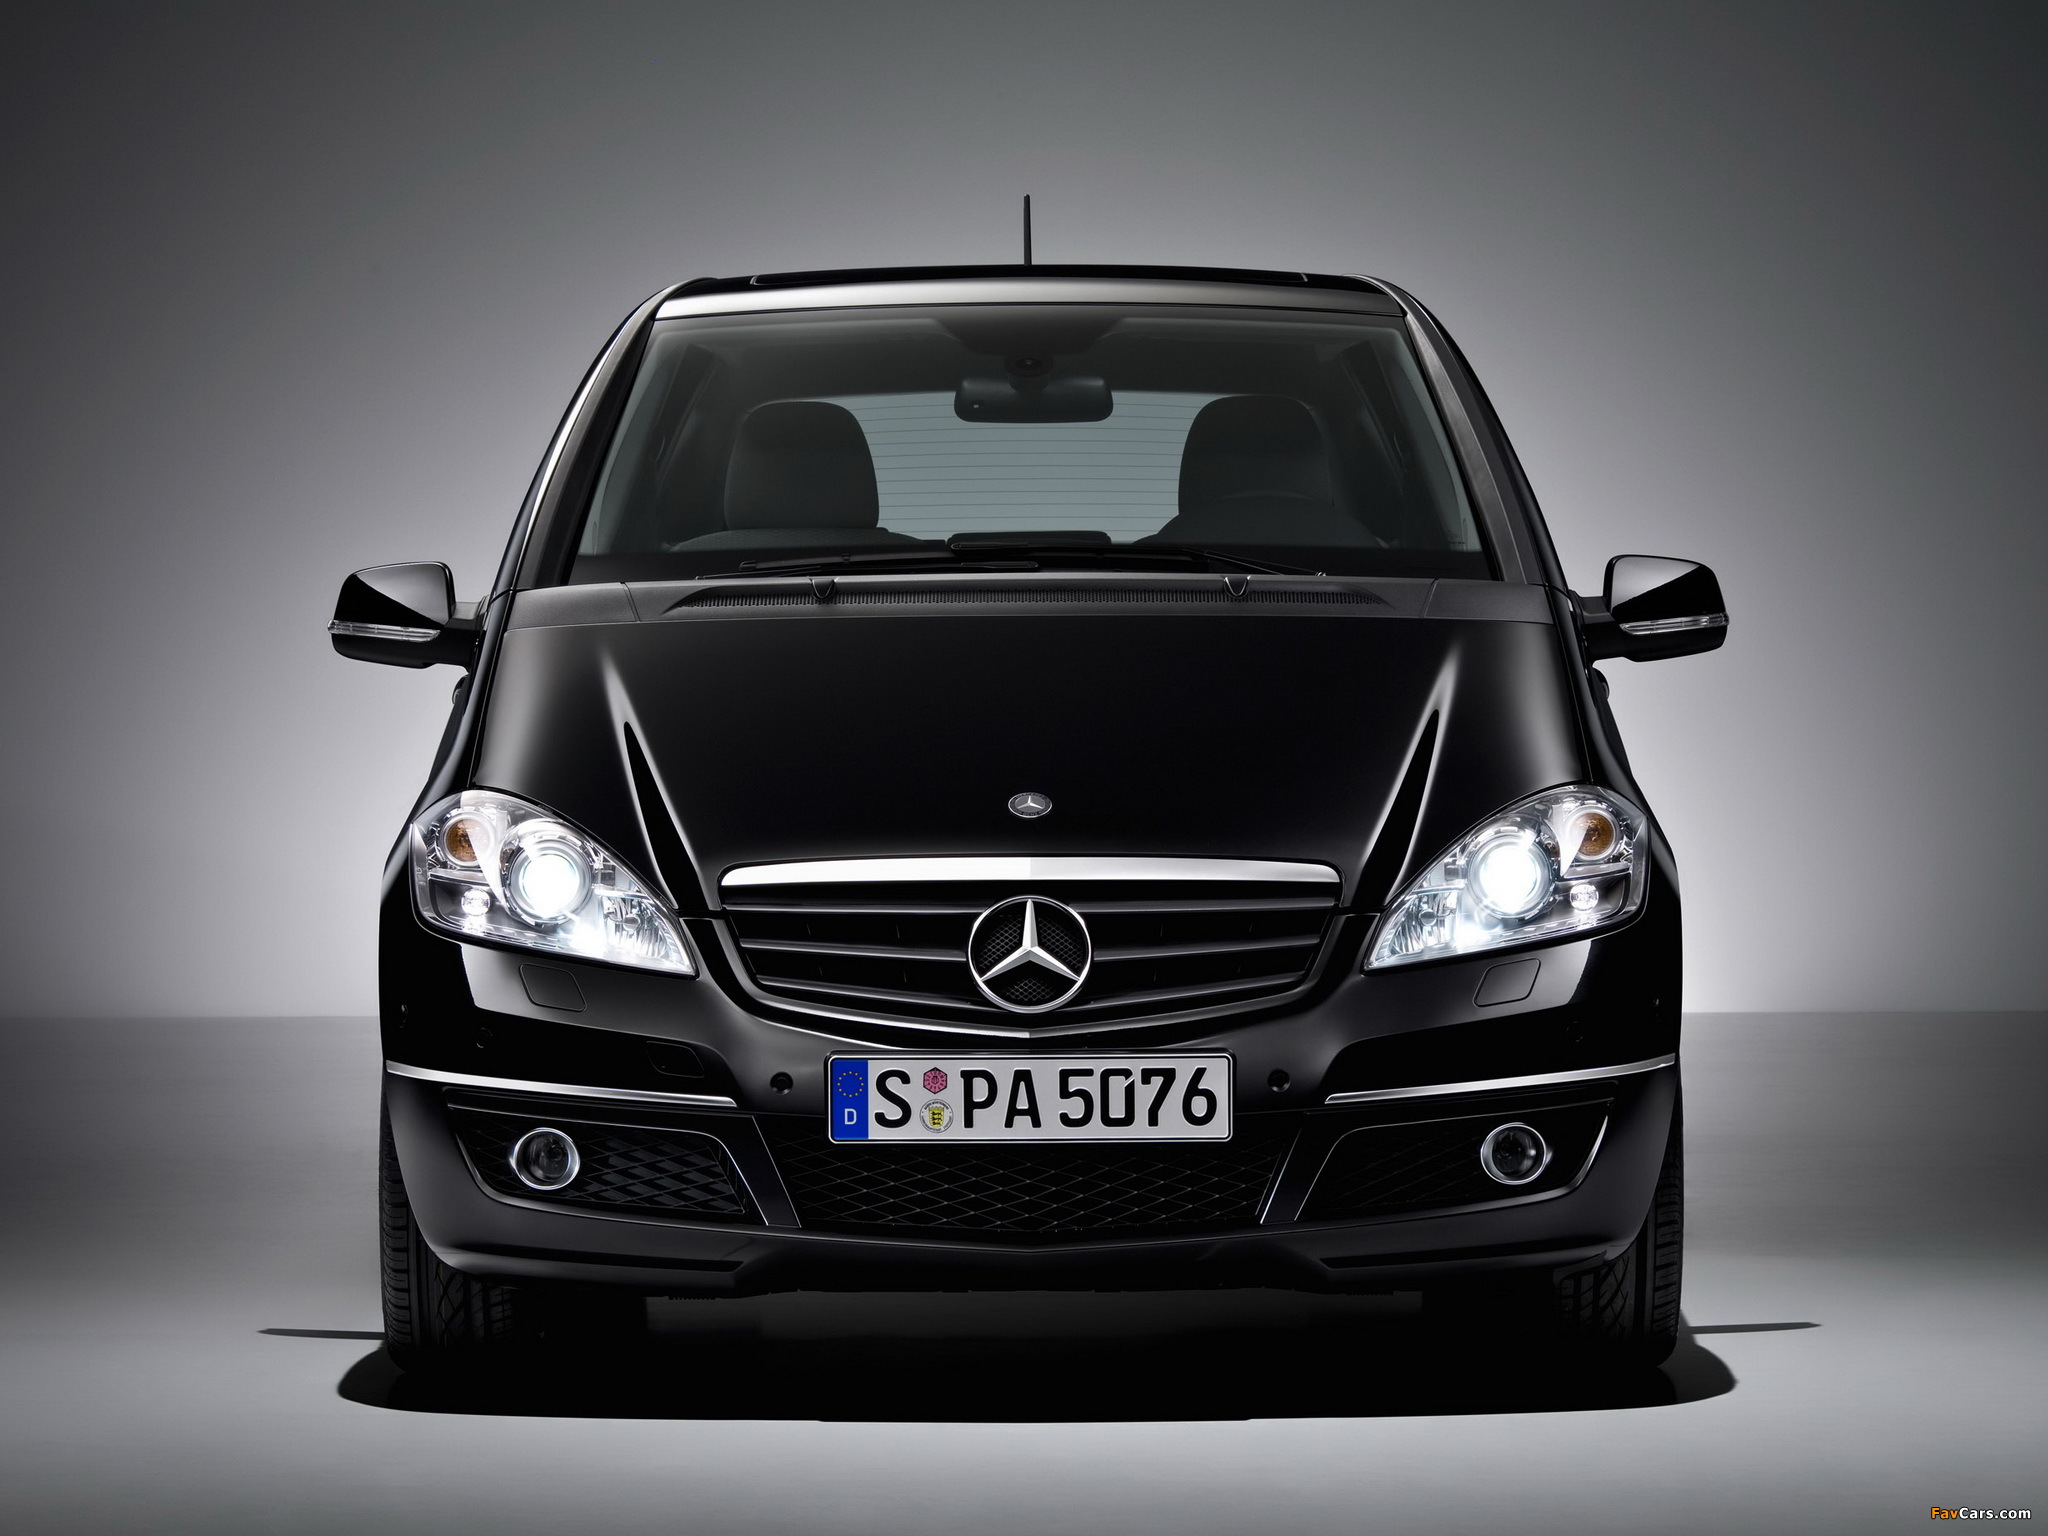 mercedes benz a klasse special edition w169 2009 pictures 2048x1536. Black Bedroom Furniture Sets. Home Design Ideas